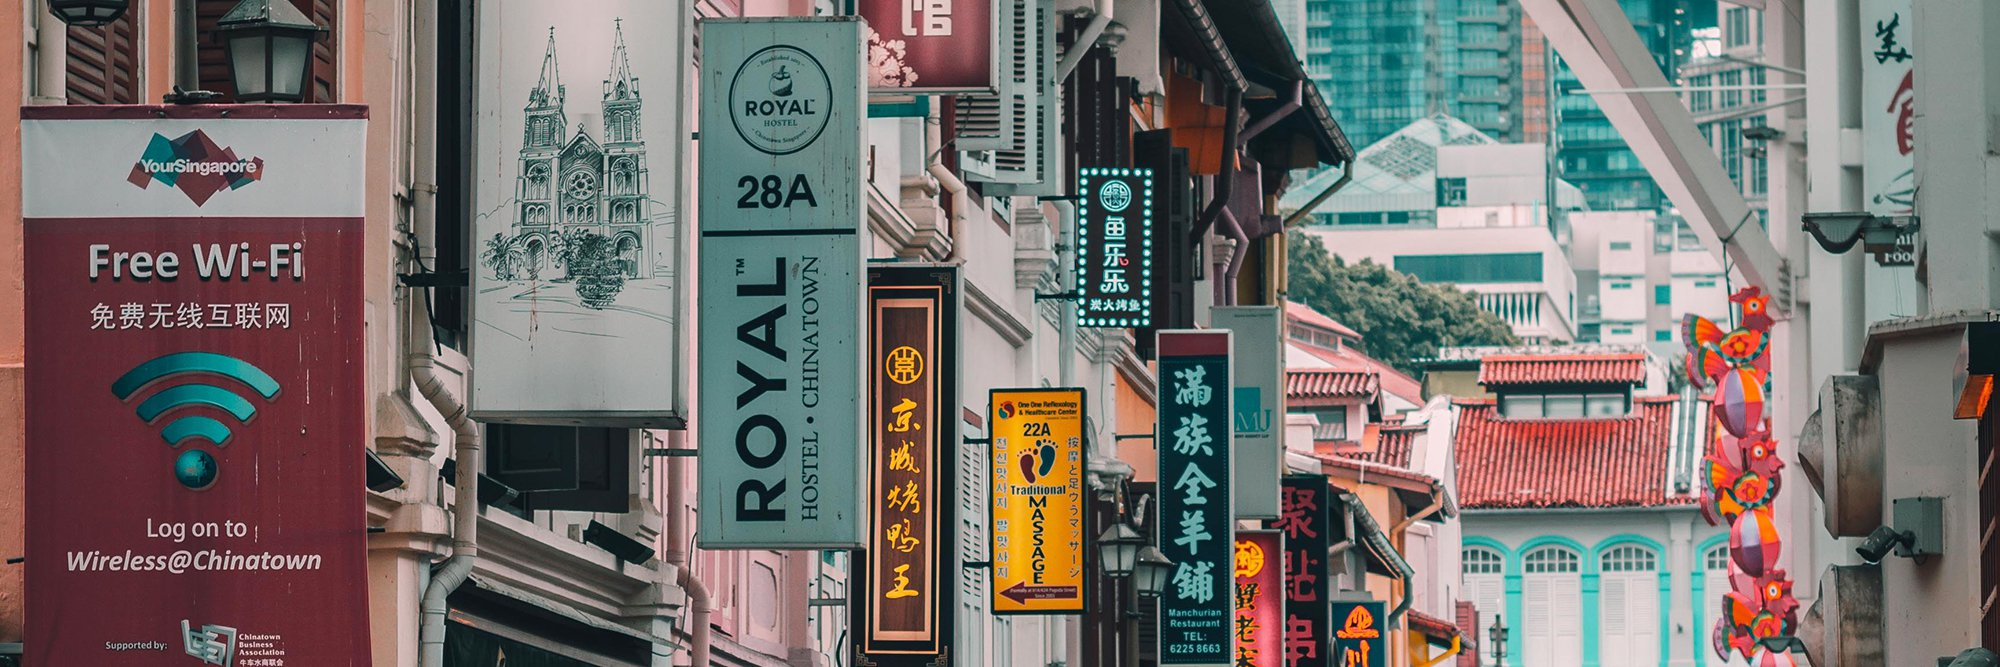 Chinatown, Singapore featuring hanging advertising banners in chinese and english